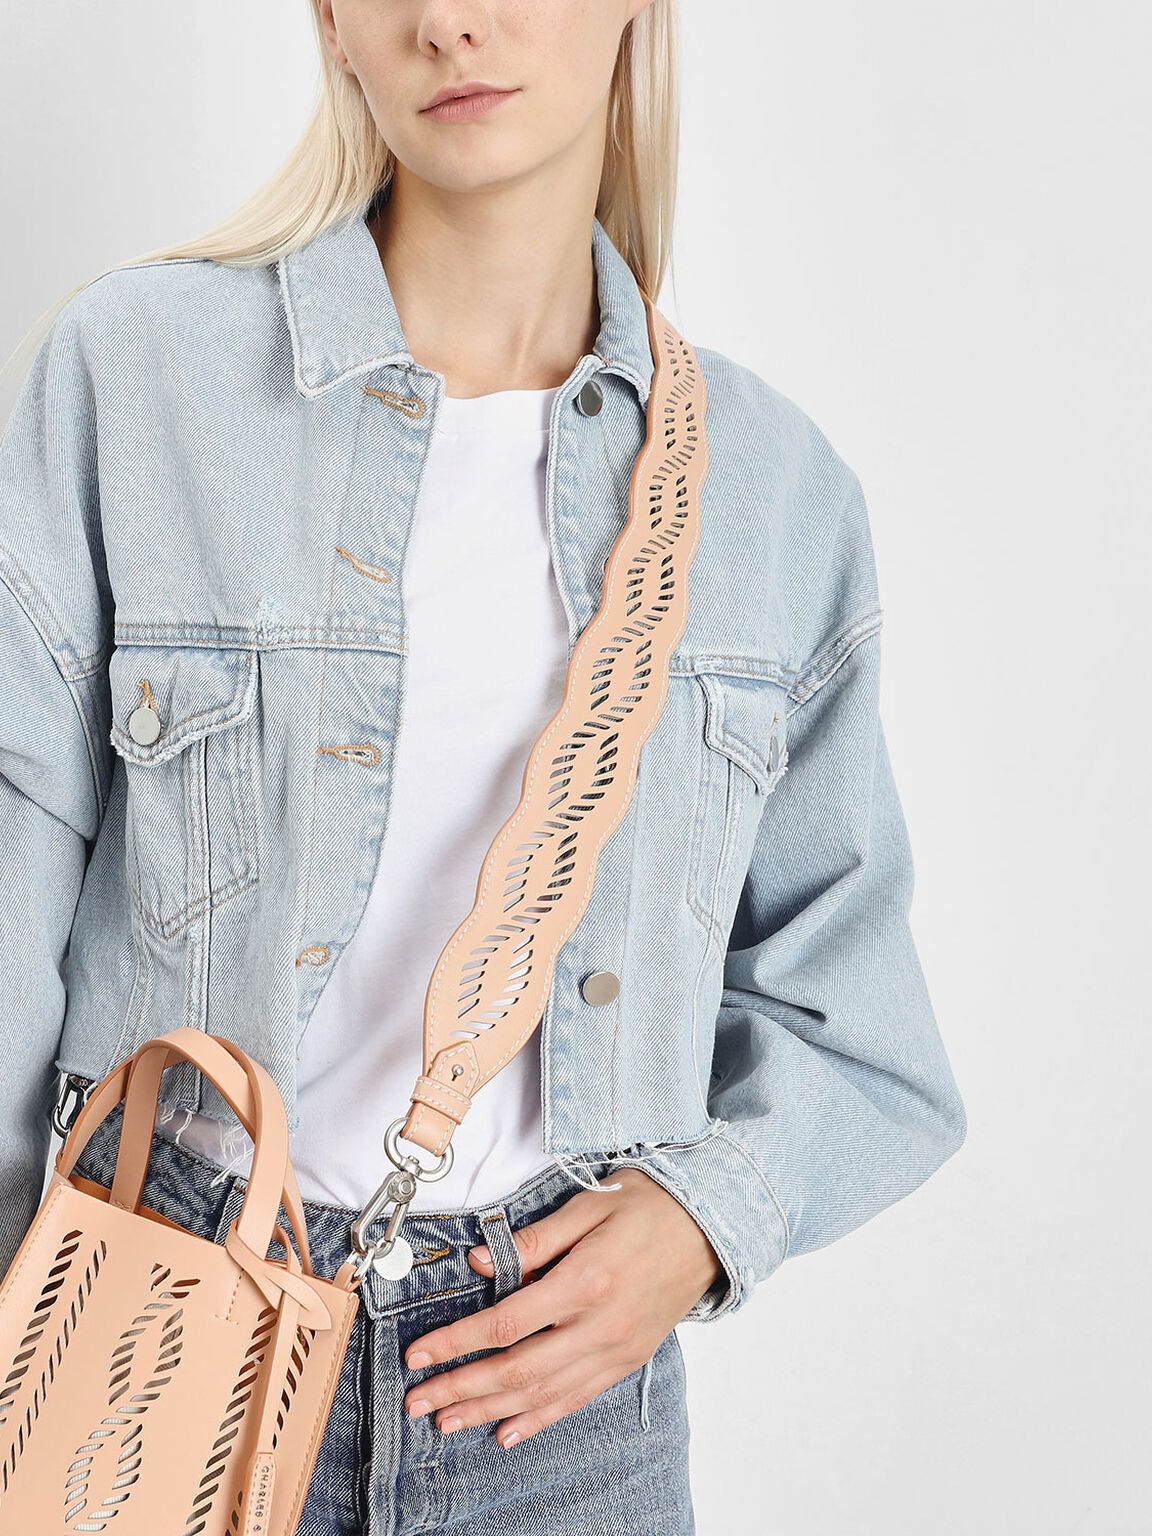 Laser Cut Bag Strap, Beige, hi-res